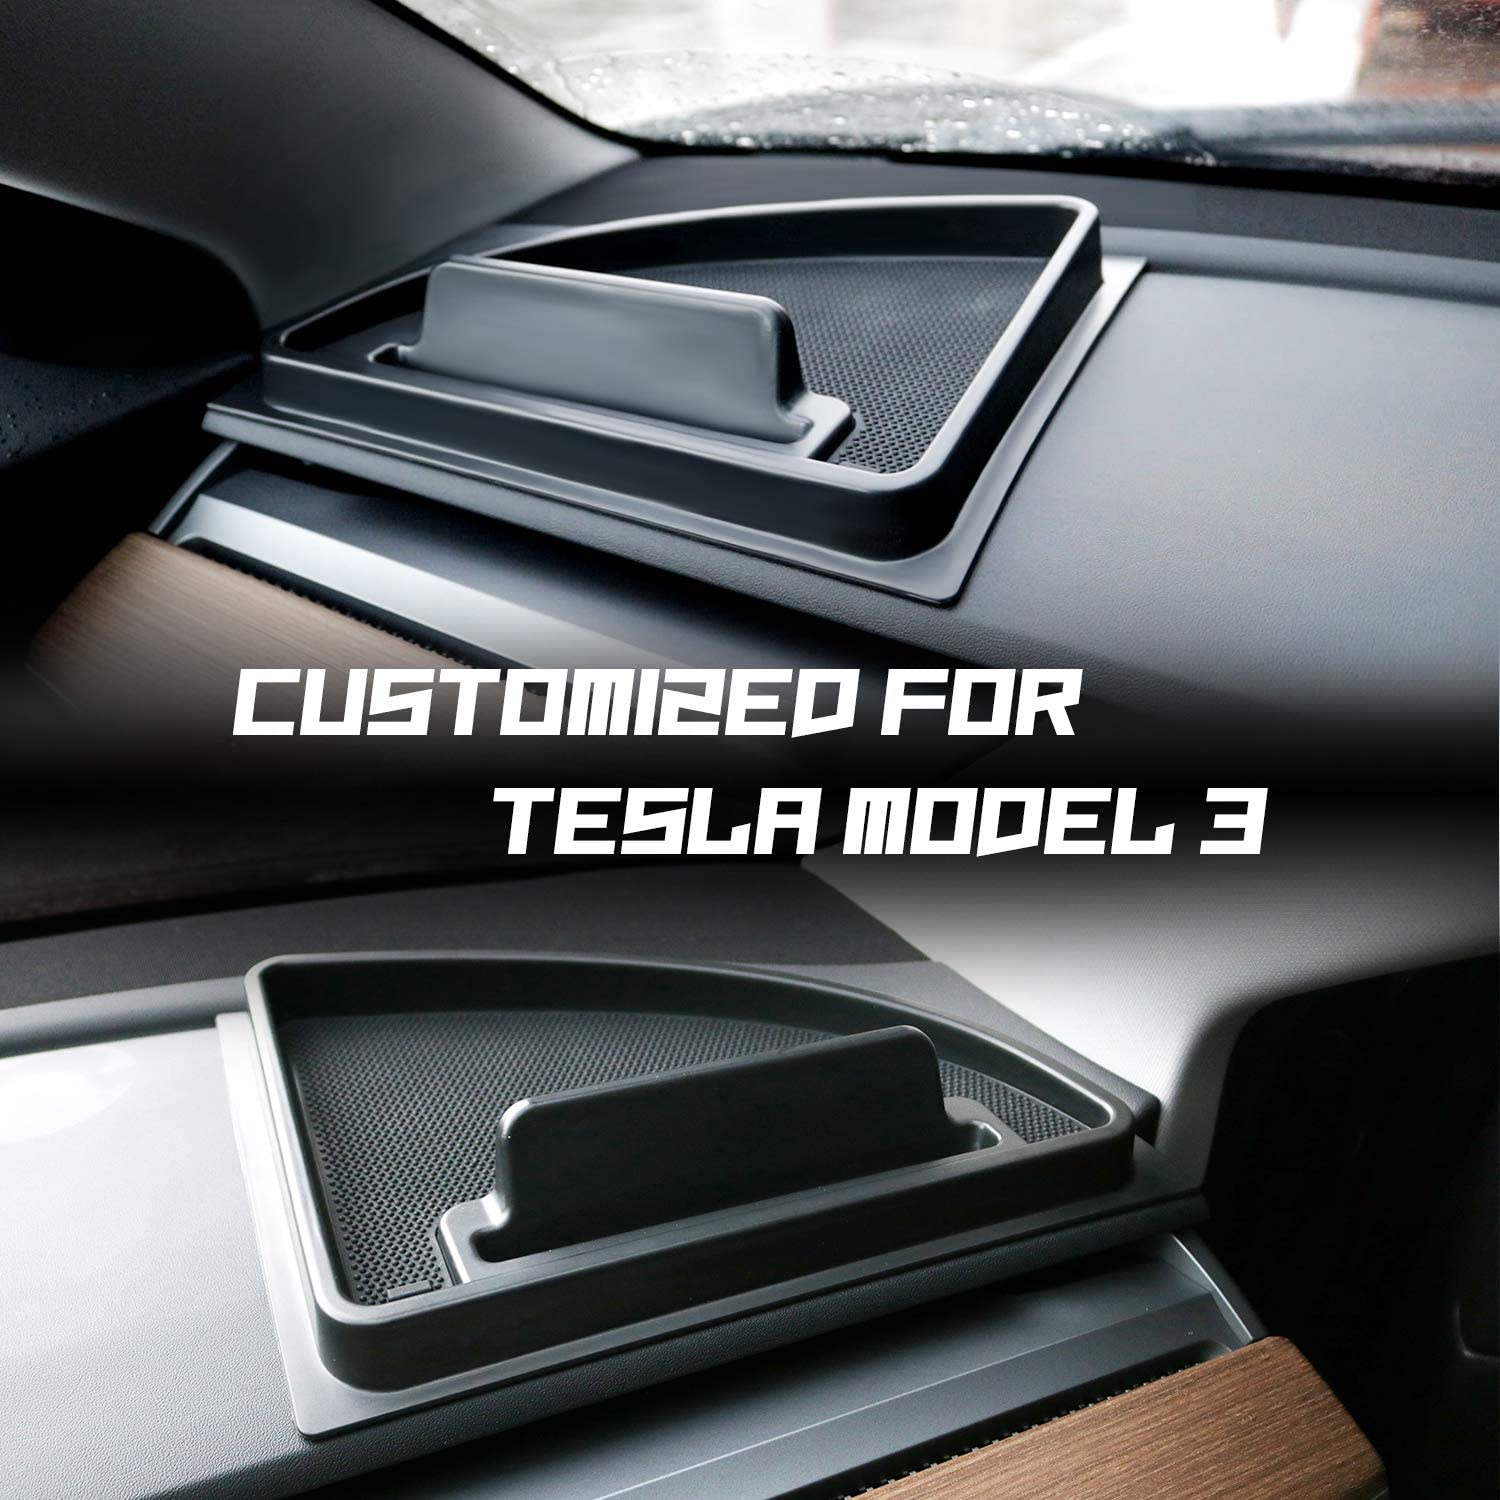 1 PCS for Right Console Sunglasses Console Storage Box for Cell Phone CDEFG Car Dash Grip Tray Dashboard Organizer for Tesla Model 3 Non Slip Black Rubber Keychains